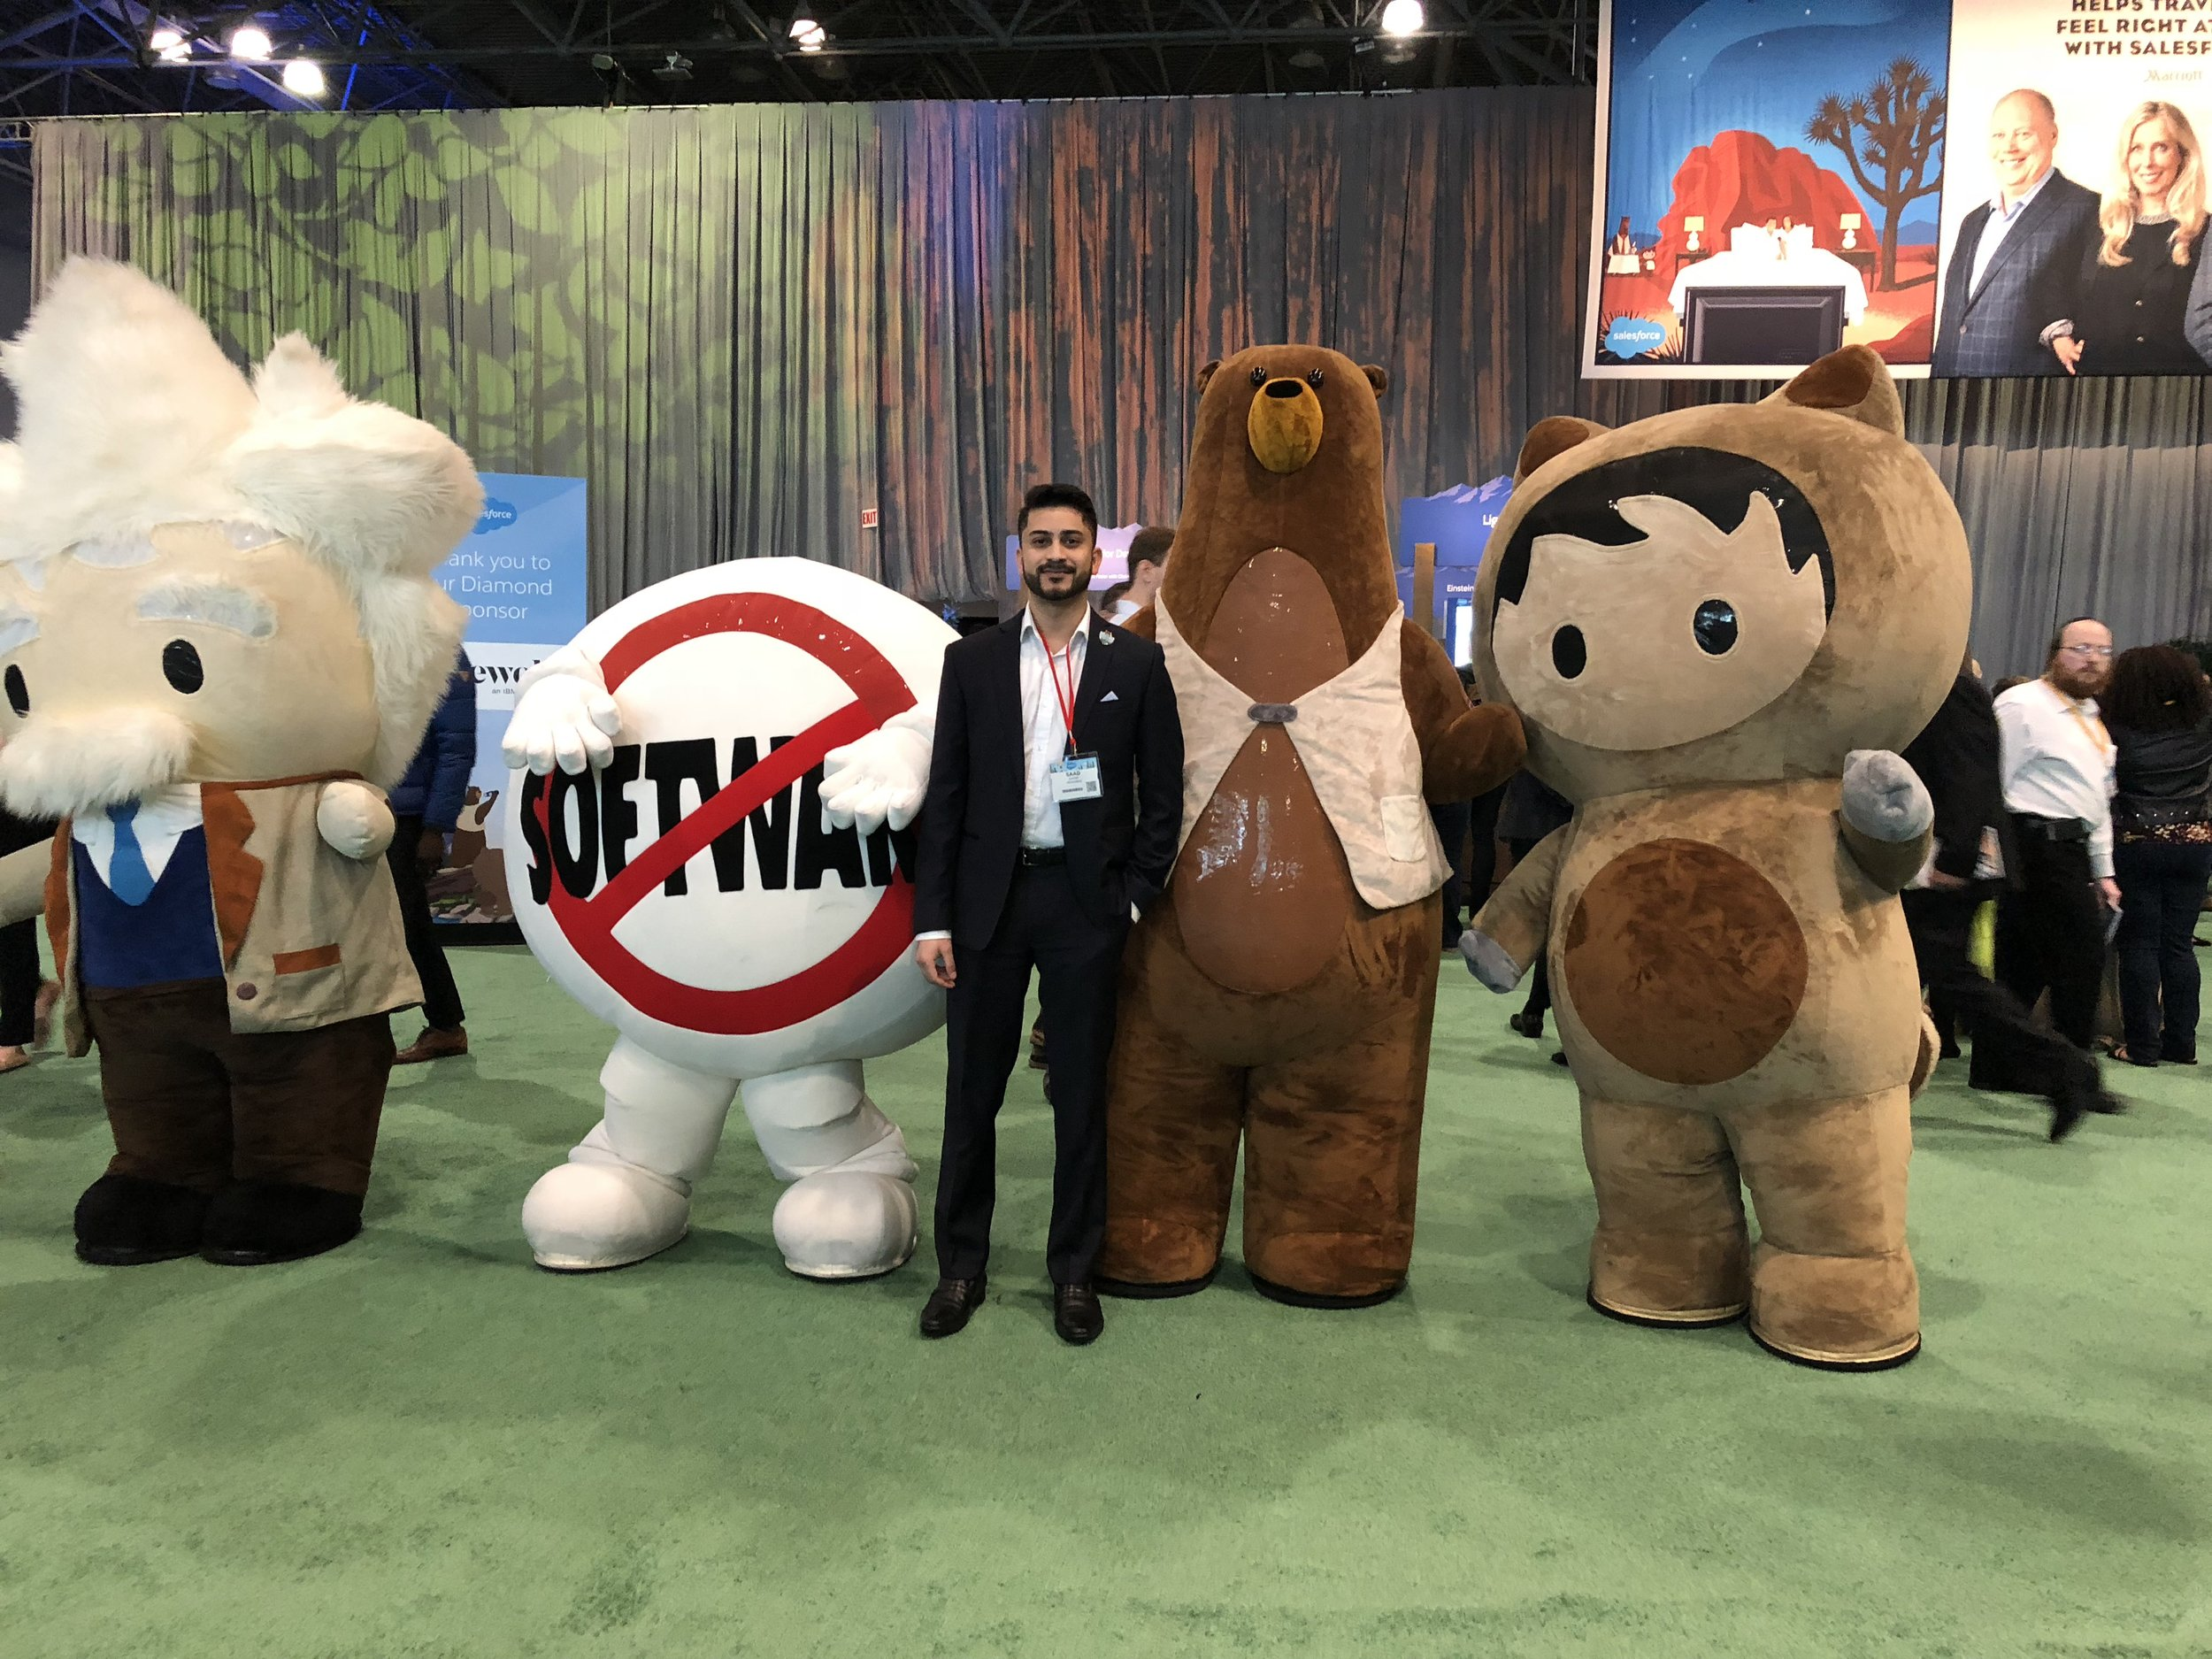 Saad Zafar,Business Development Manager at the Salesforce World Tour in New York City.